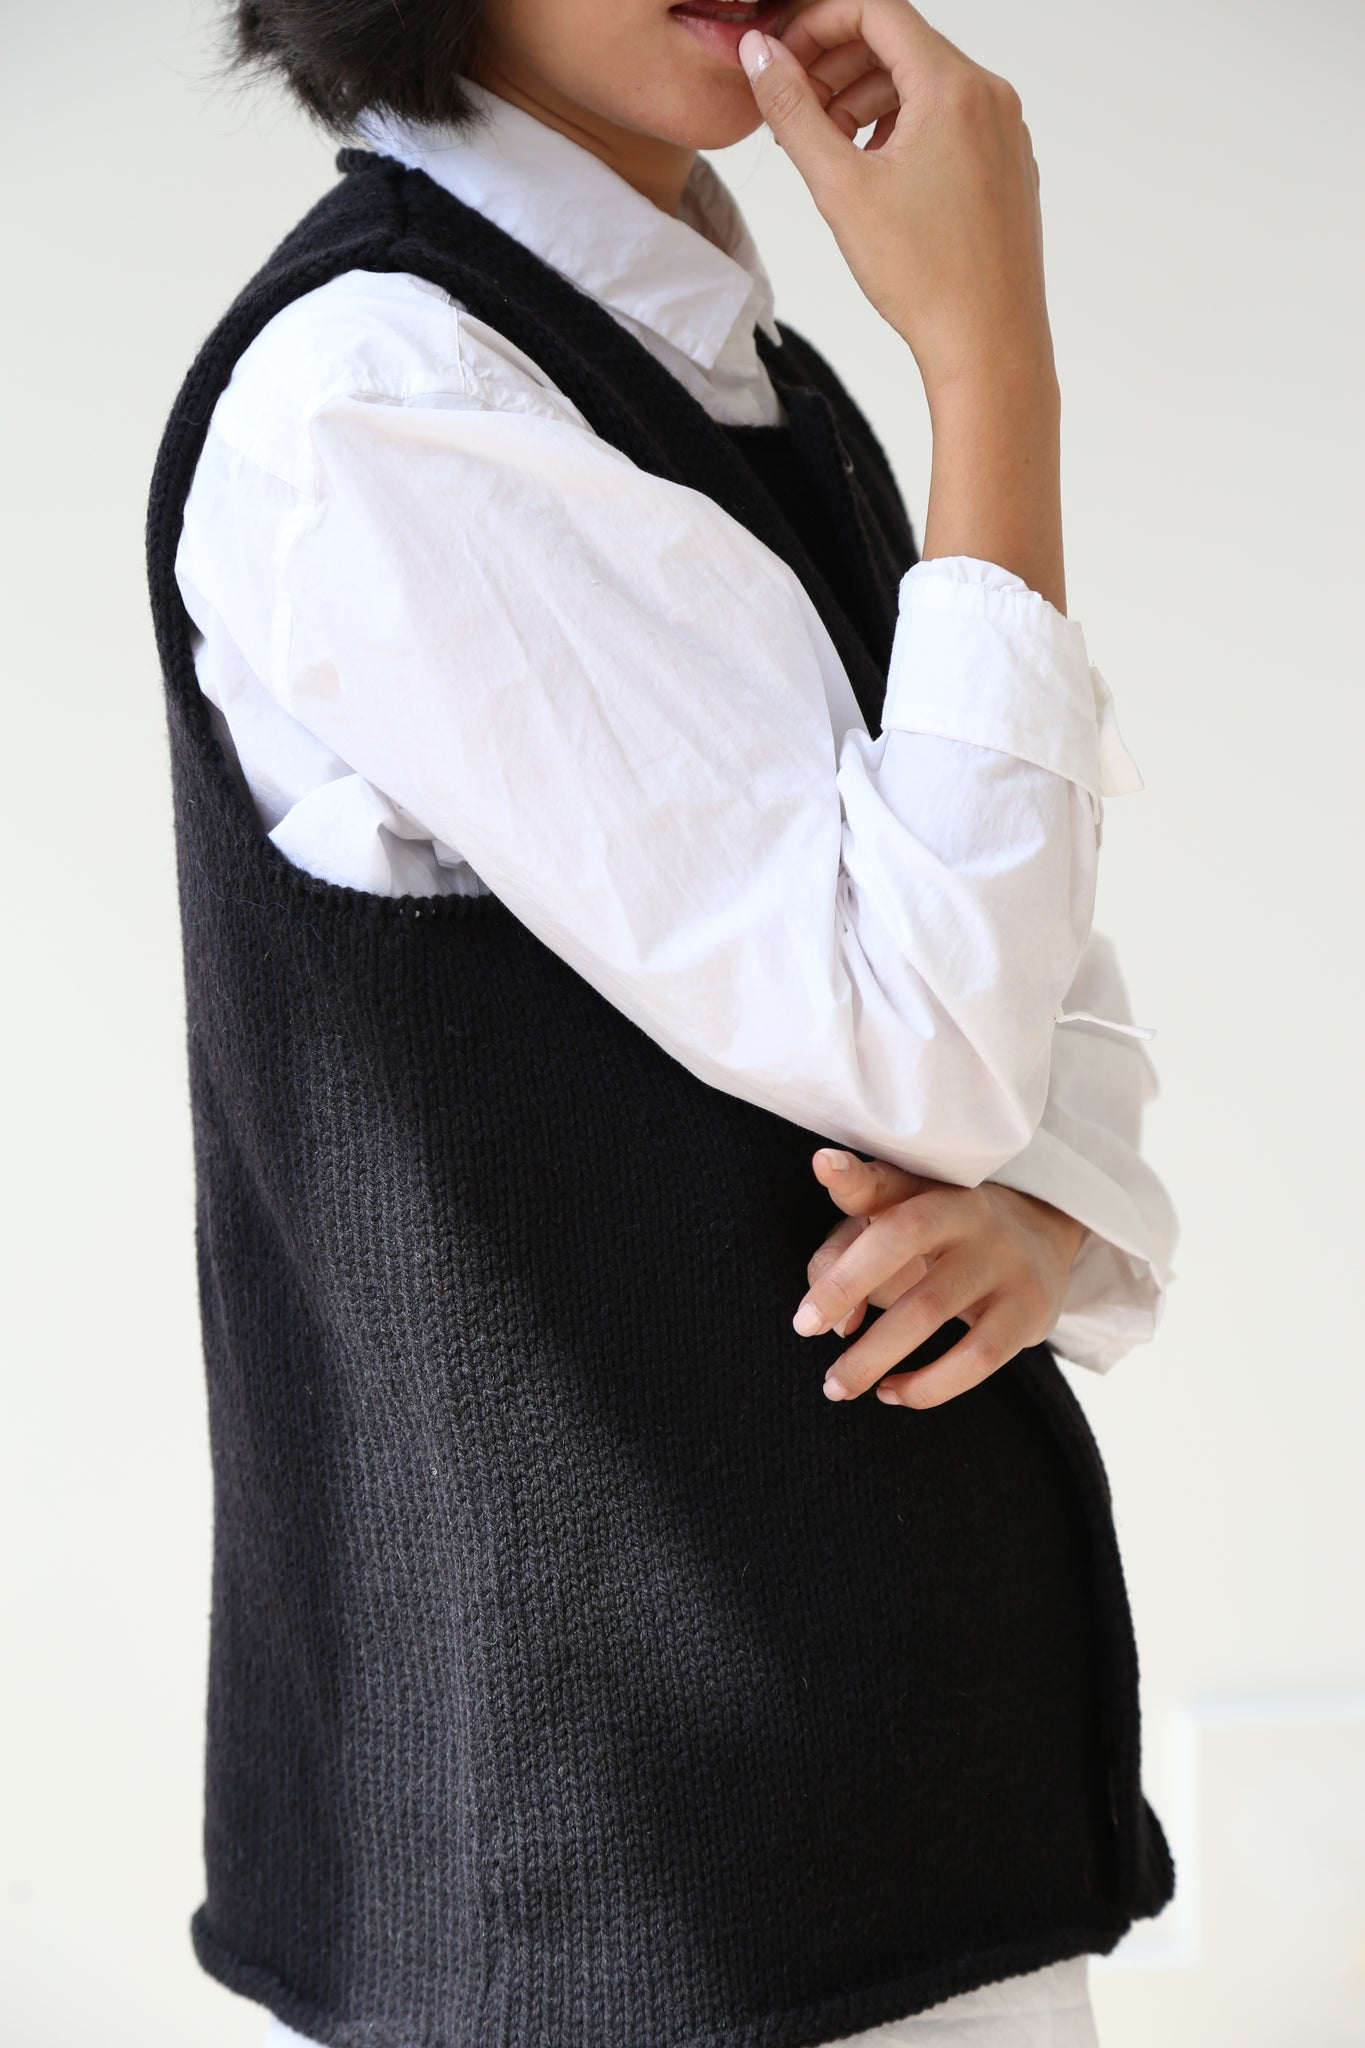 Bergfabel Wool Vest in Black